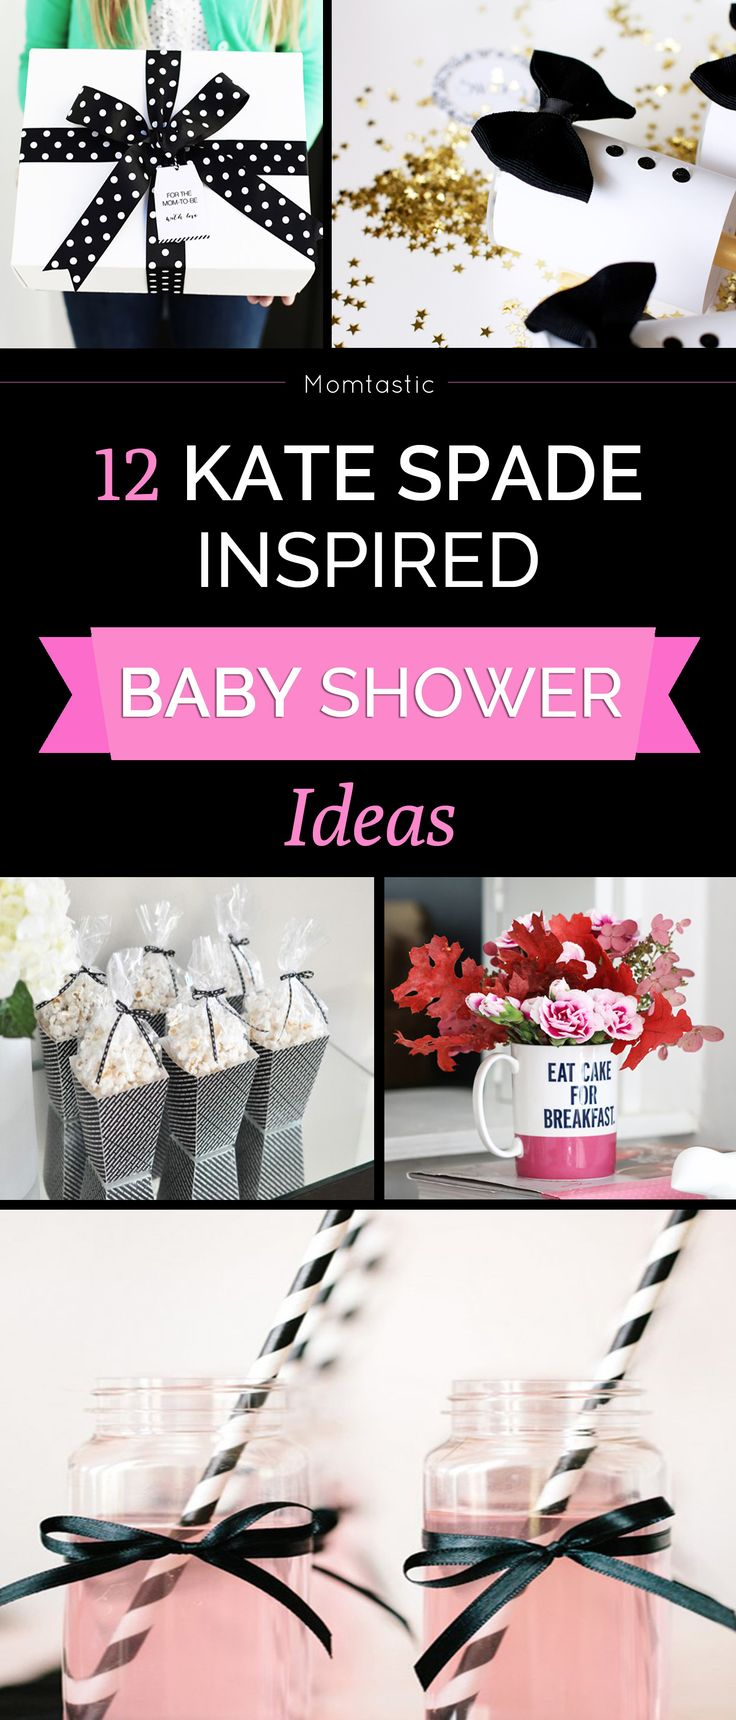 Most baby showers are hosted right around lunch time which can leave - 12 Ideas For A Kate Spade Inspired Baby Shower